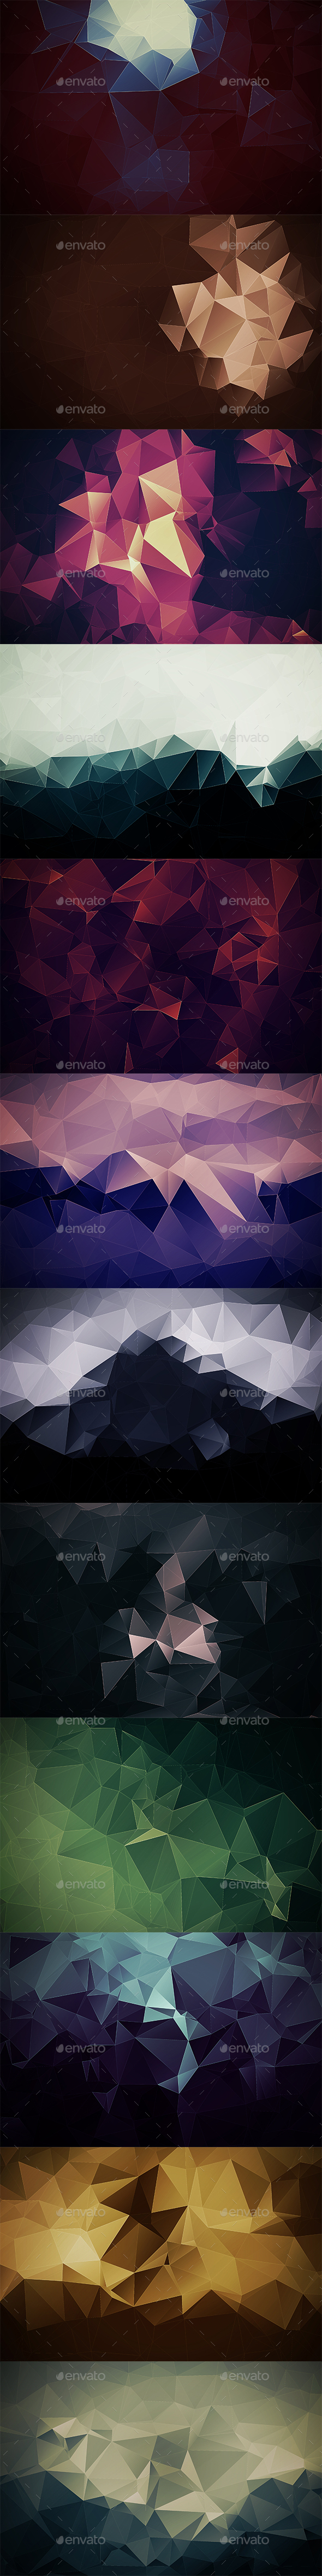 Abstract Polygonal Backgrounds Vol10 - Abstract Backgrounds